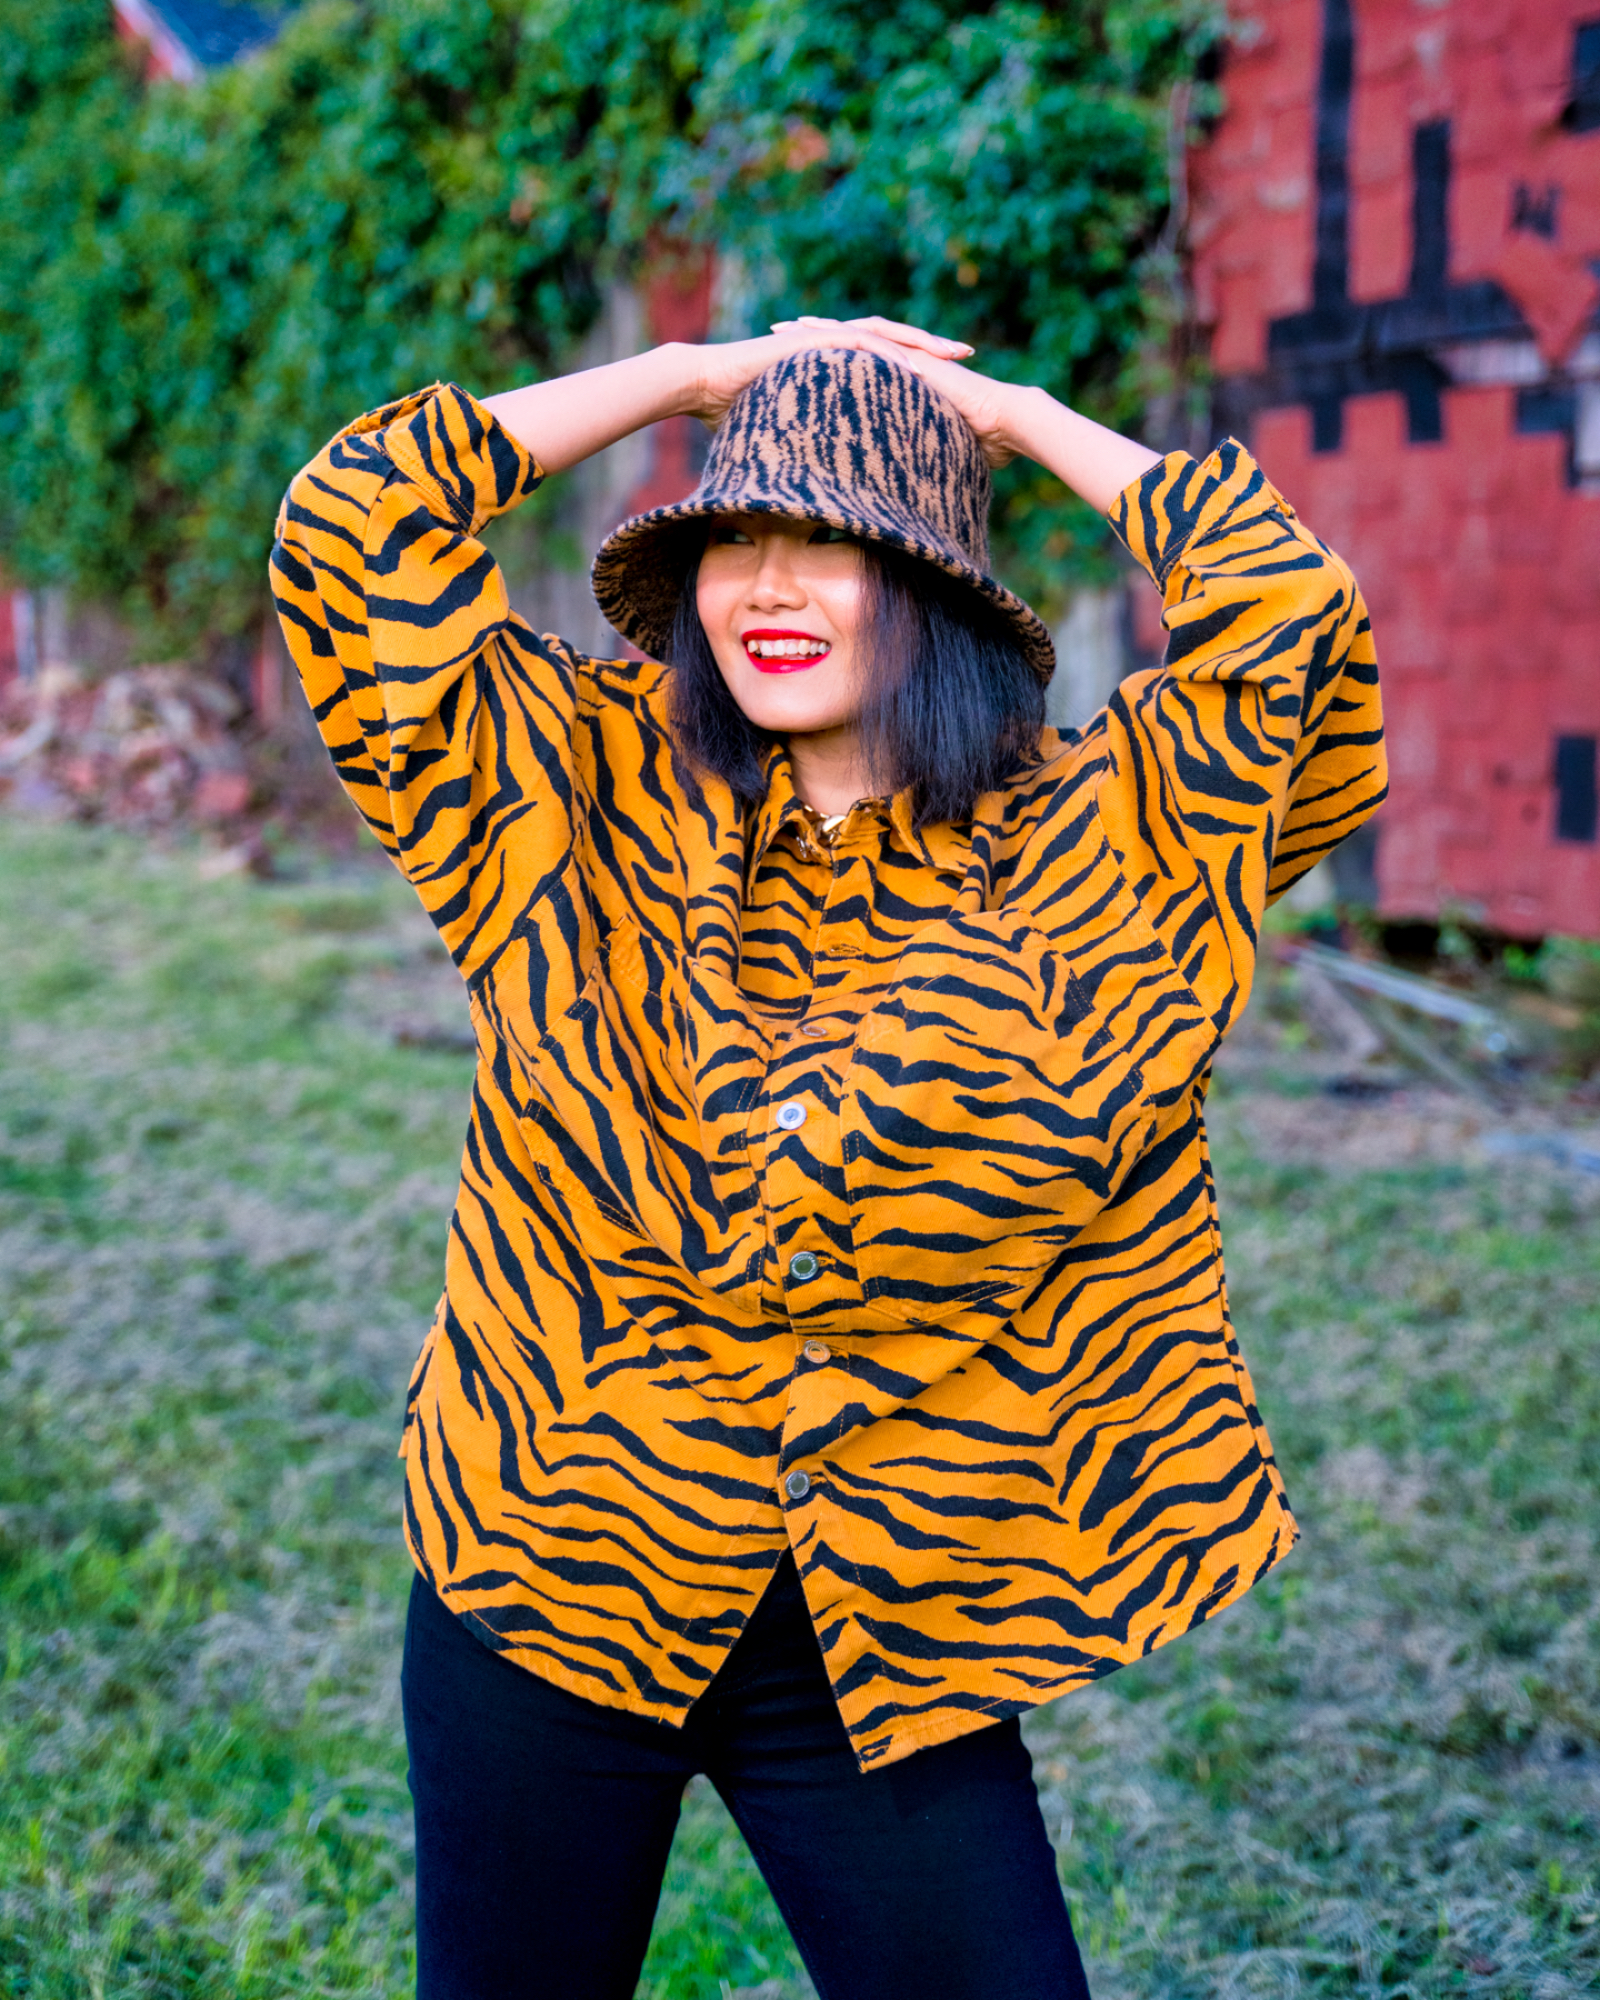 nanphanita jacob that hat girl is wearing head to toe with animal pattern tiger print bucket hat by san diego hat company knh2023